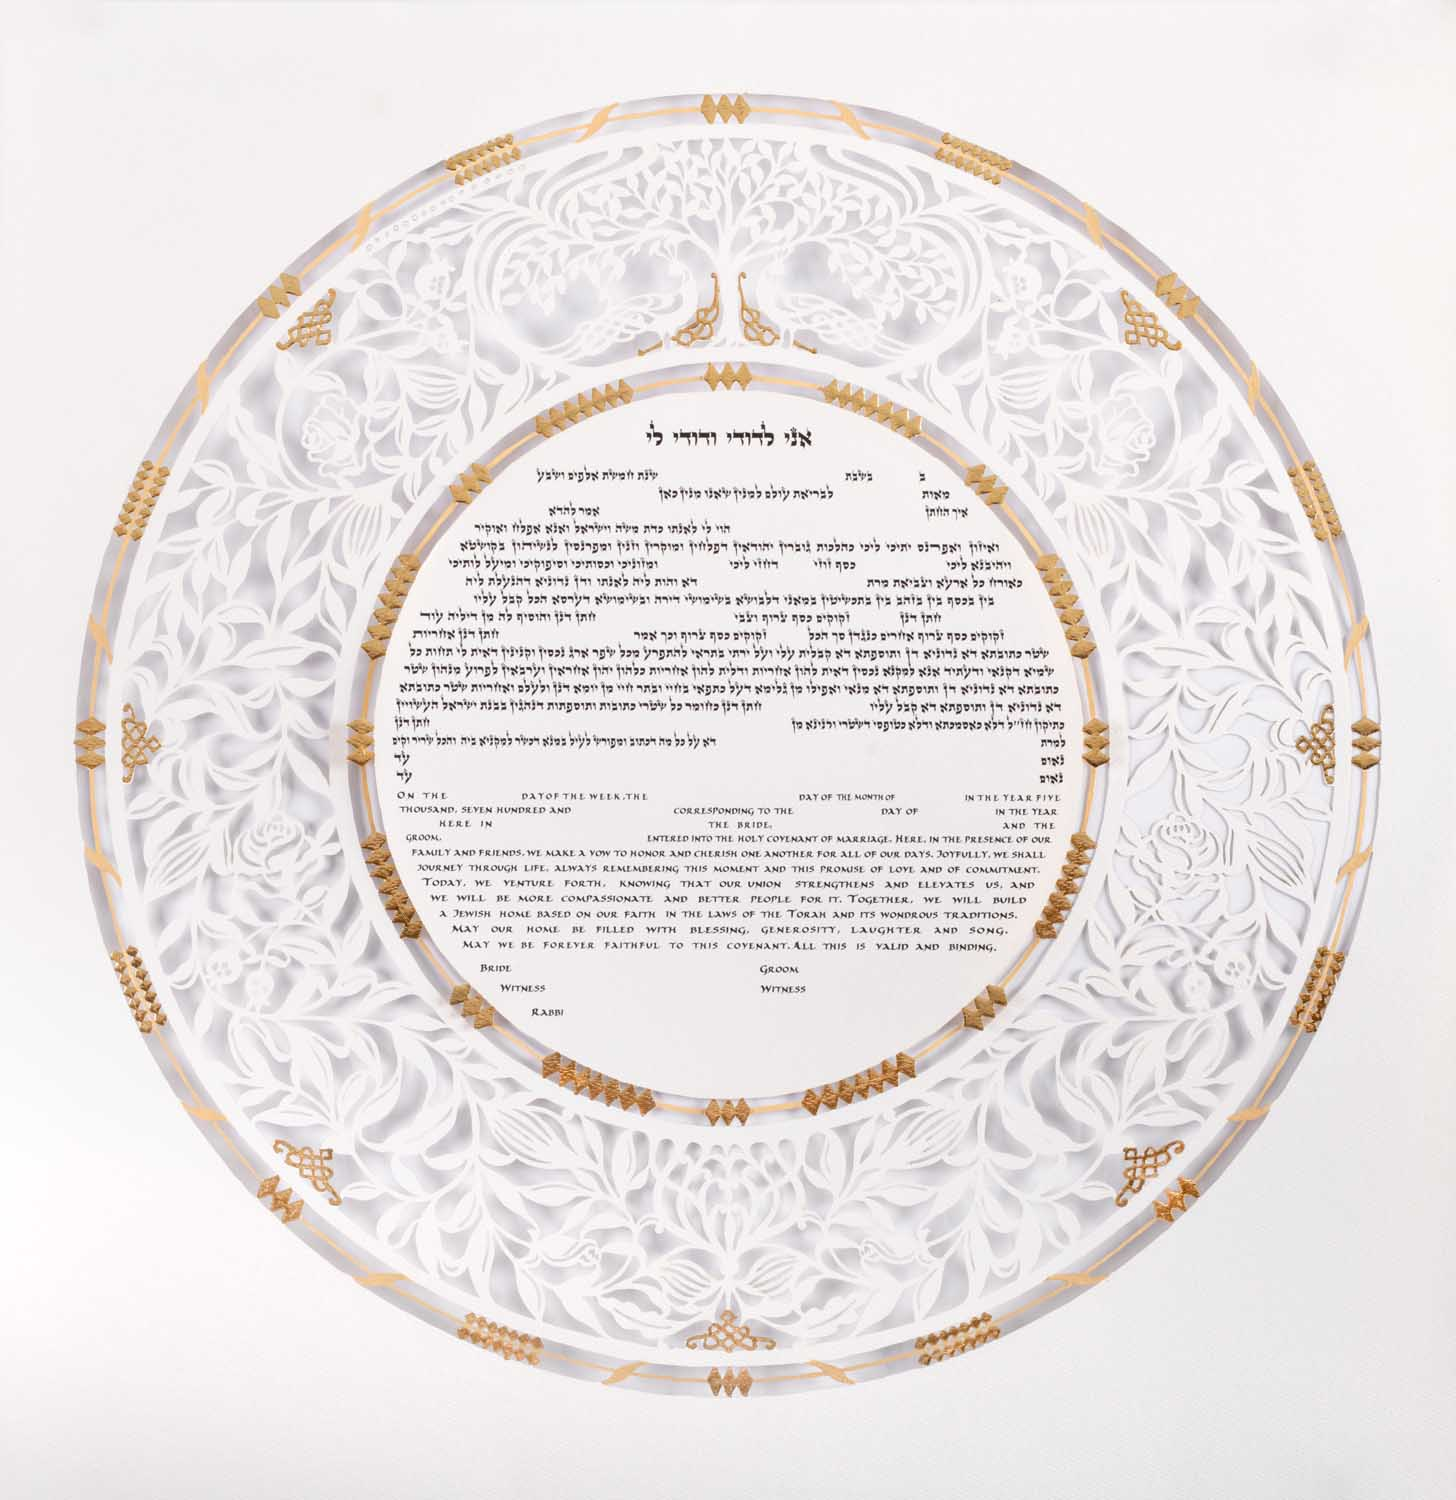 This is a full size image of a round Ketubah by the Israeli artist, Daniel Azulay